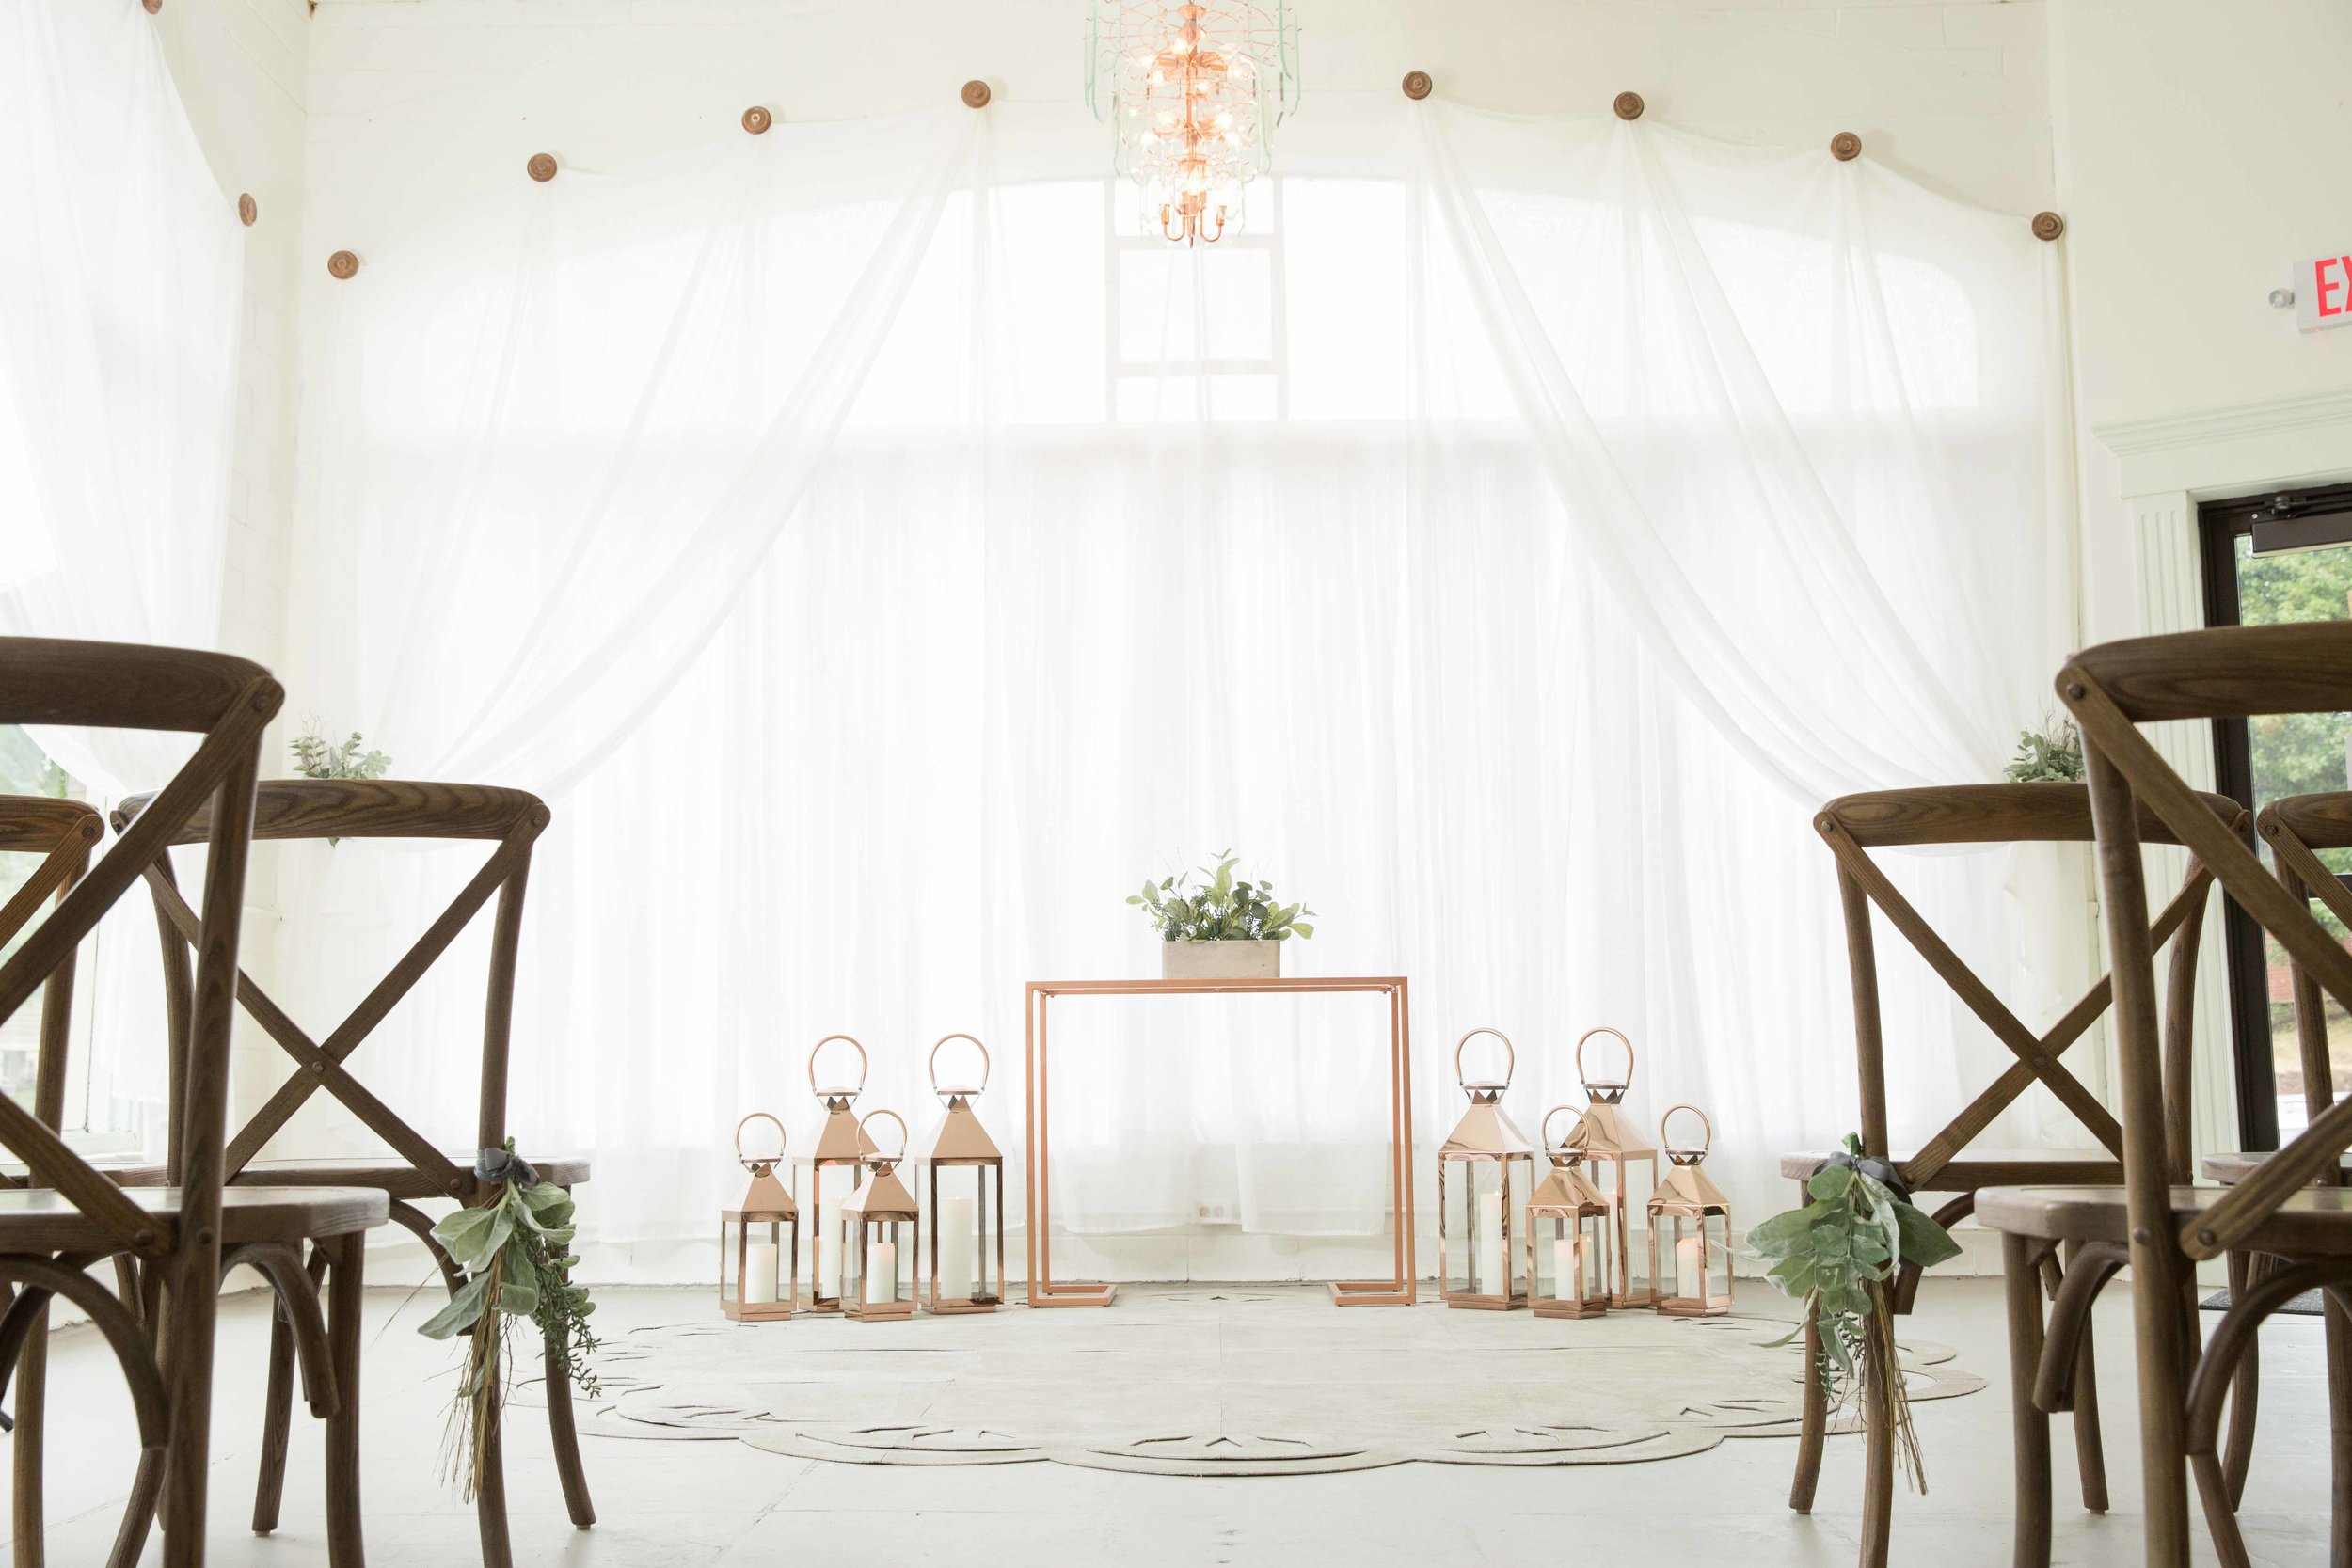 $1050 - THE VOW EXCHANGE CEREMONY ATTHE CHAPEL ON THE CORNERMAX 70 GUESTS